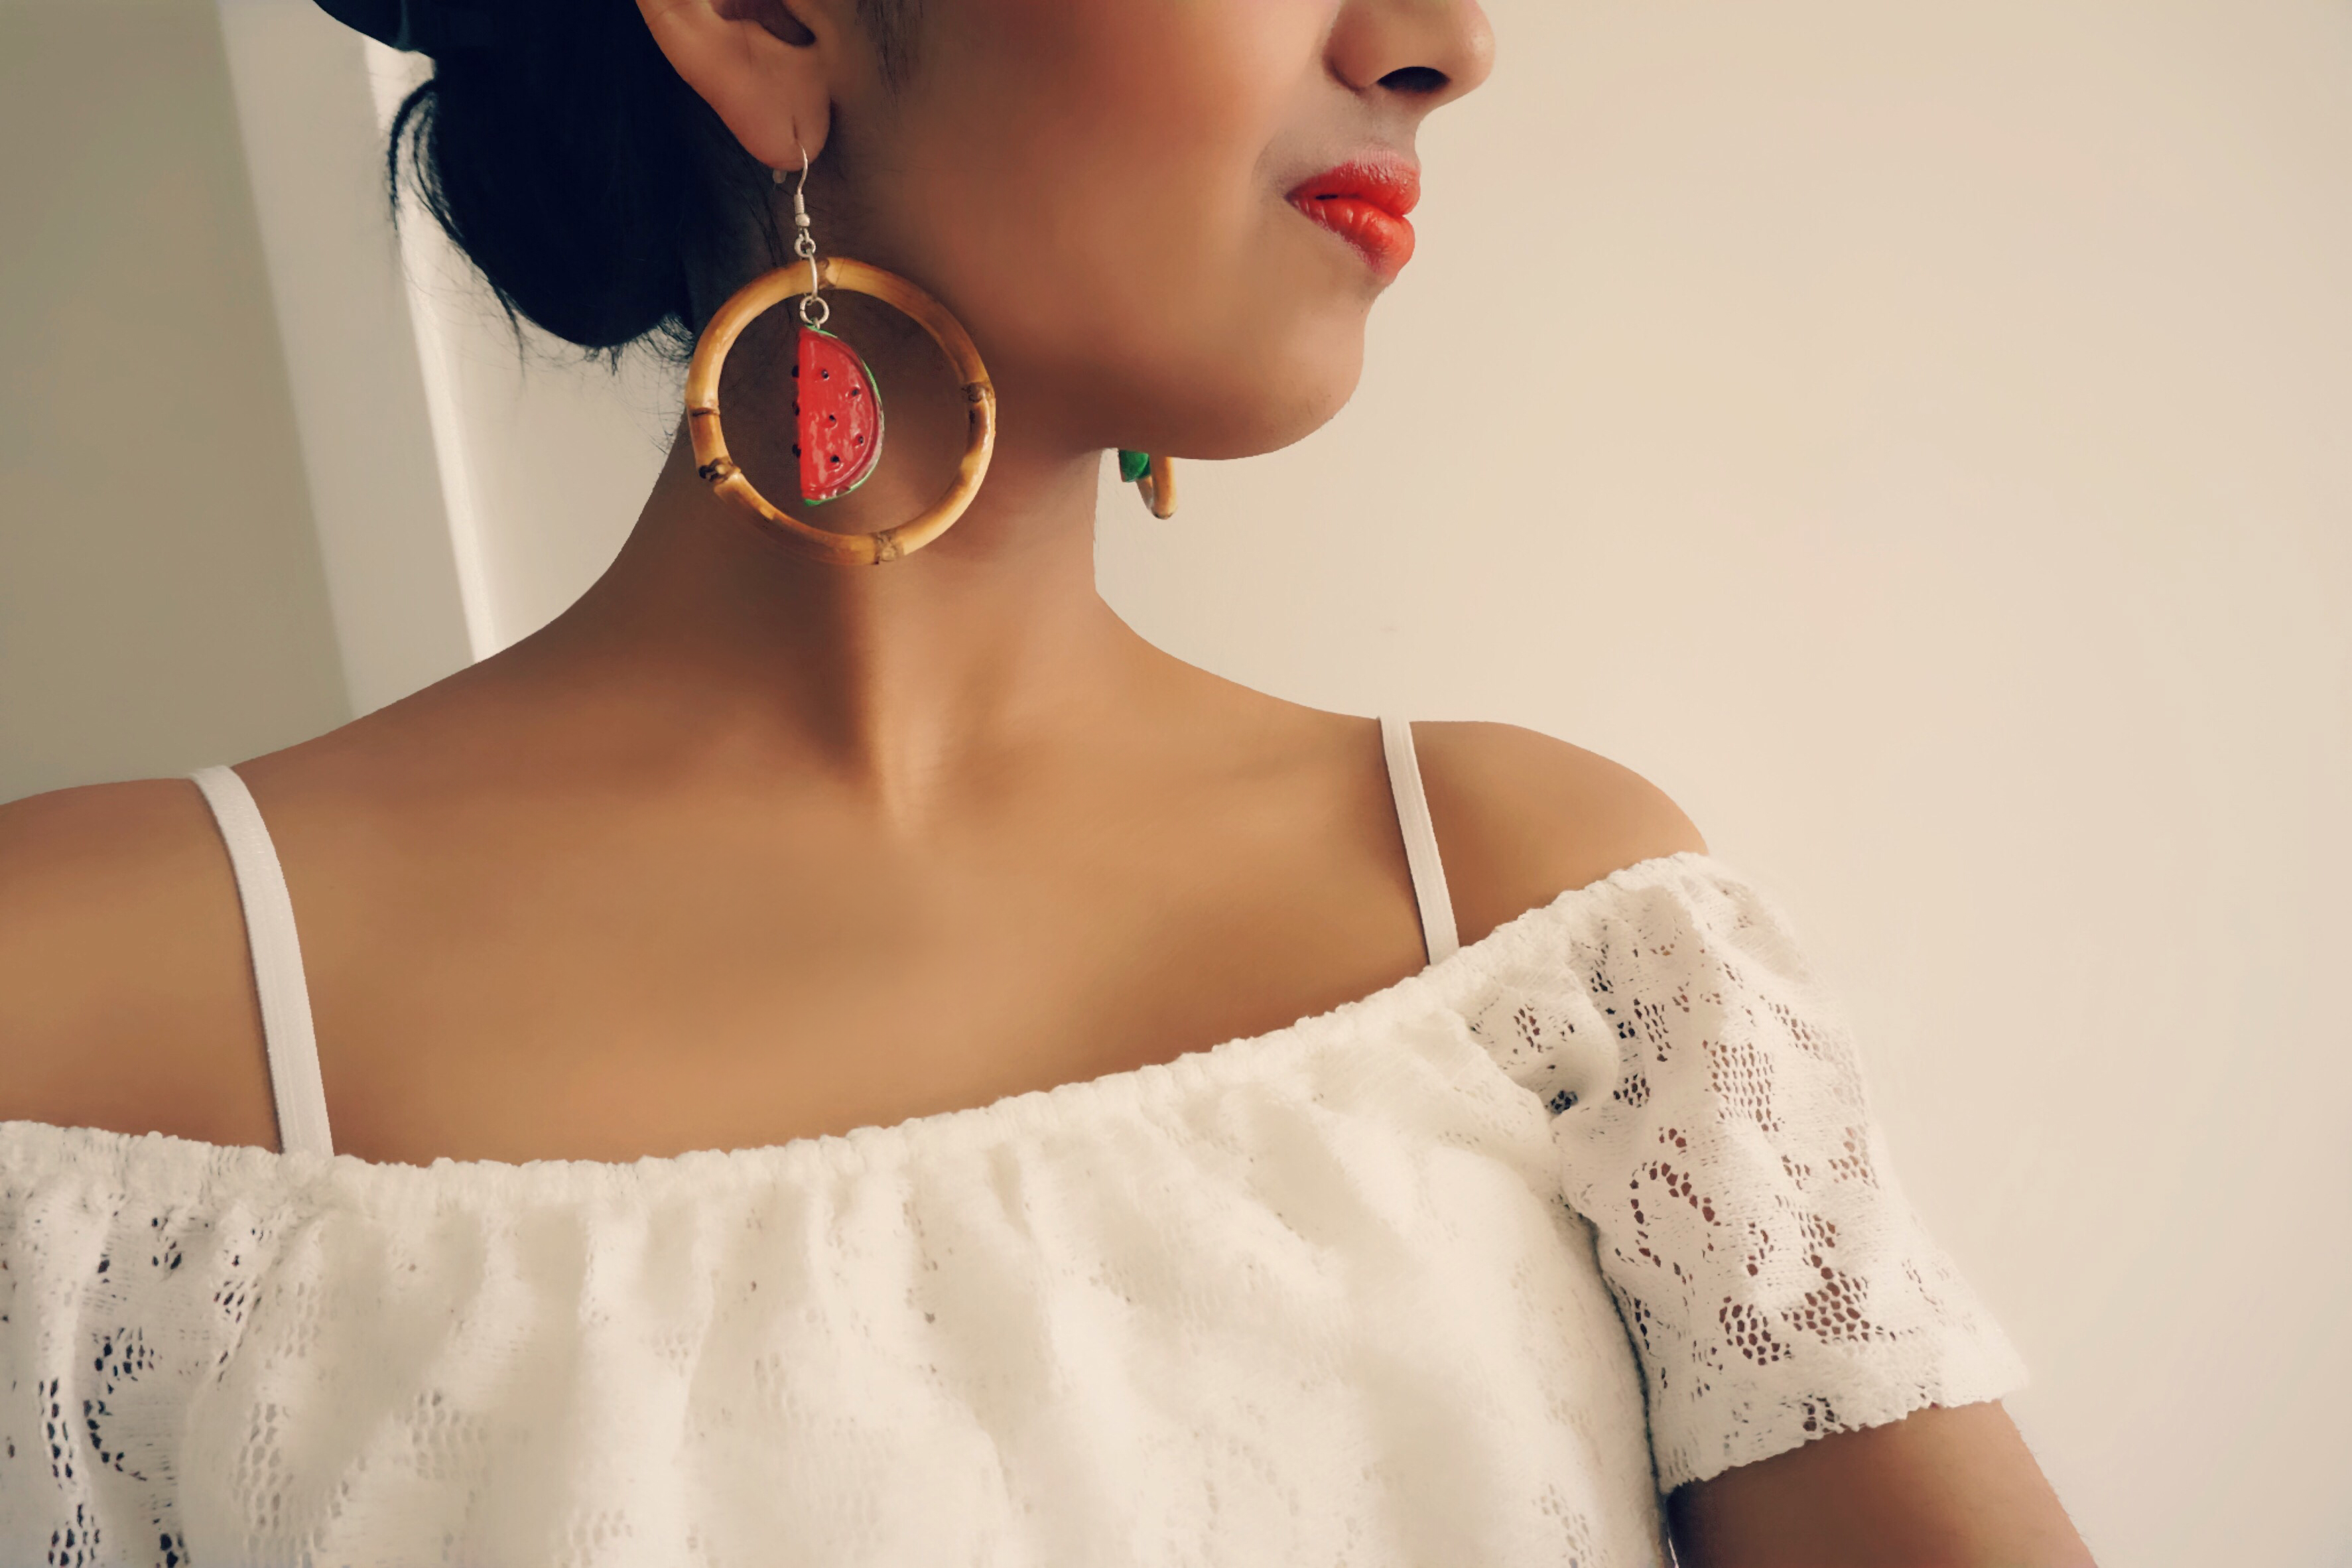 Bow and Crossbones earrings and lace top